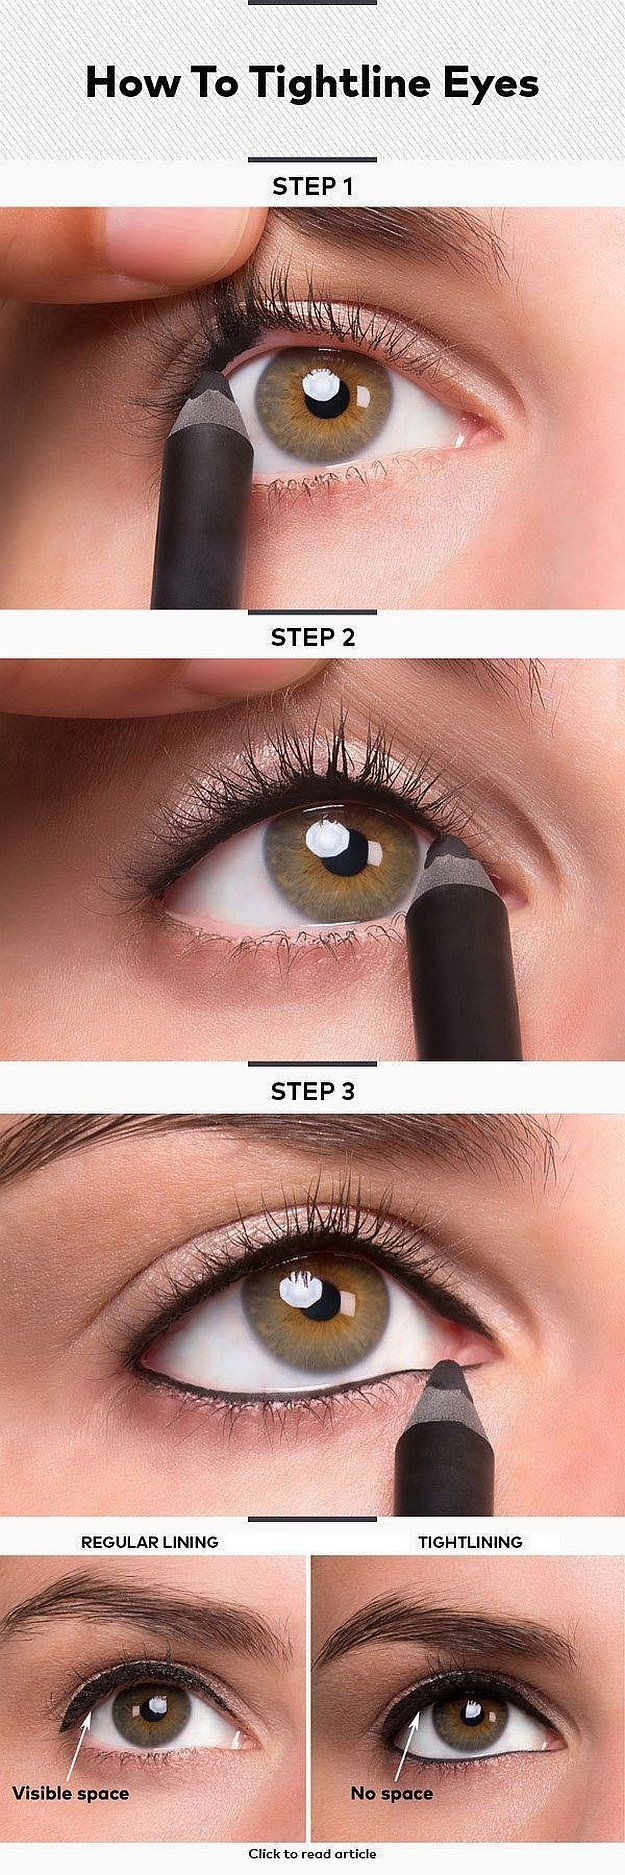 Tightlining 101 Make Your Eyes Bigger Lashes Thicker Check It Out At Makeupt